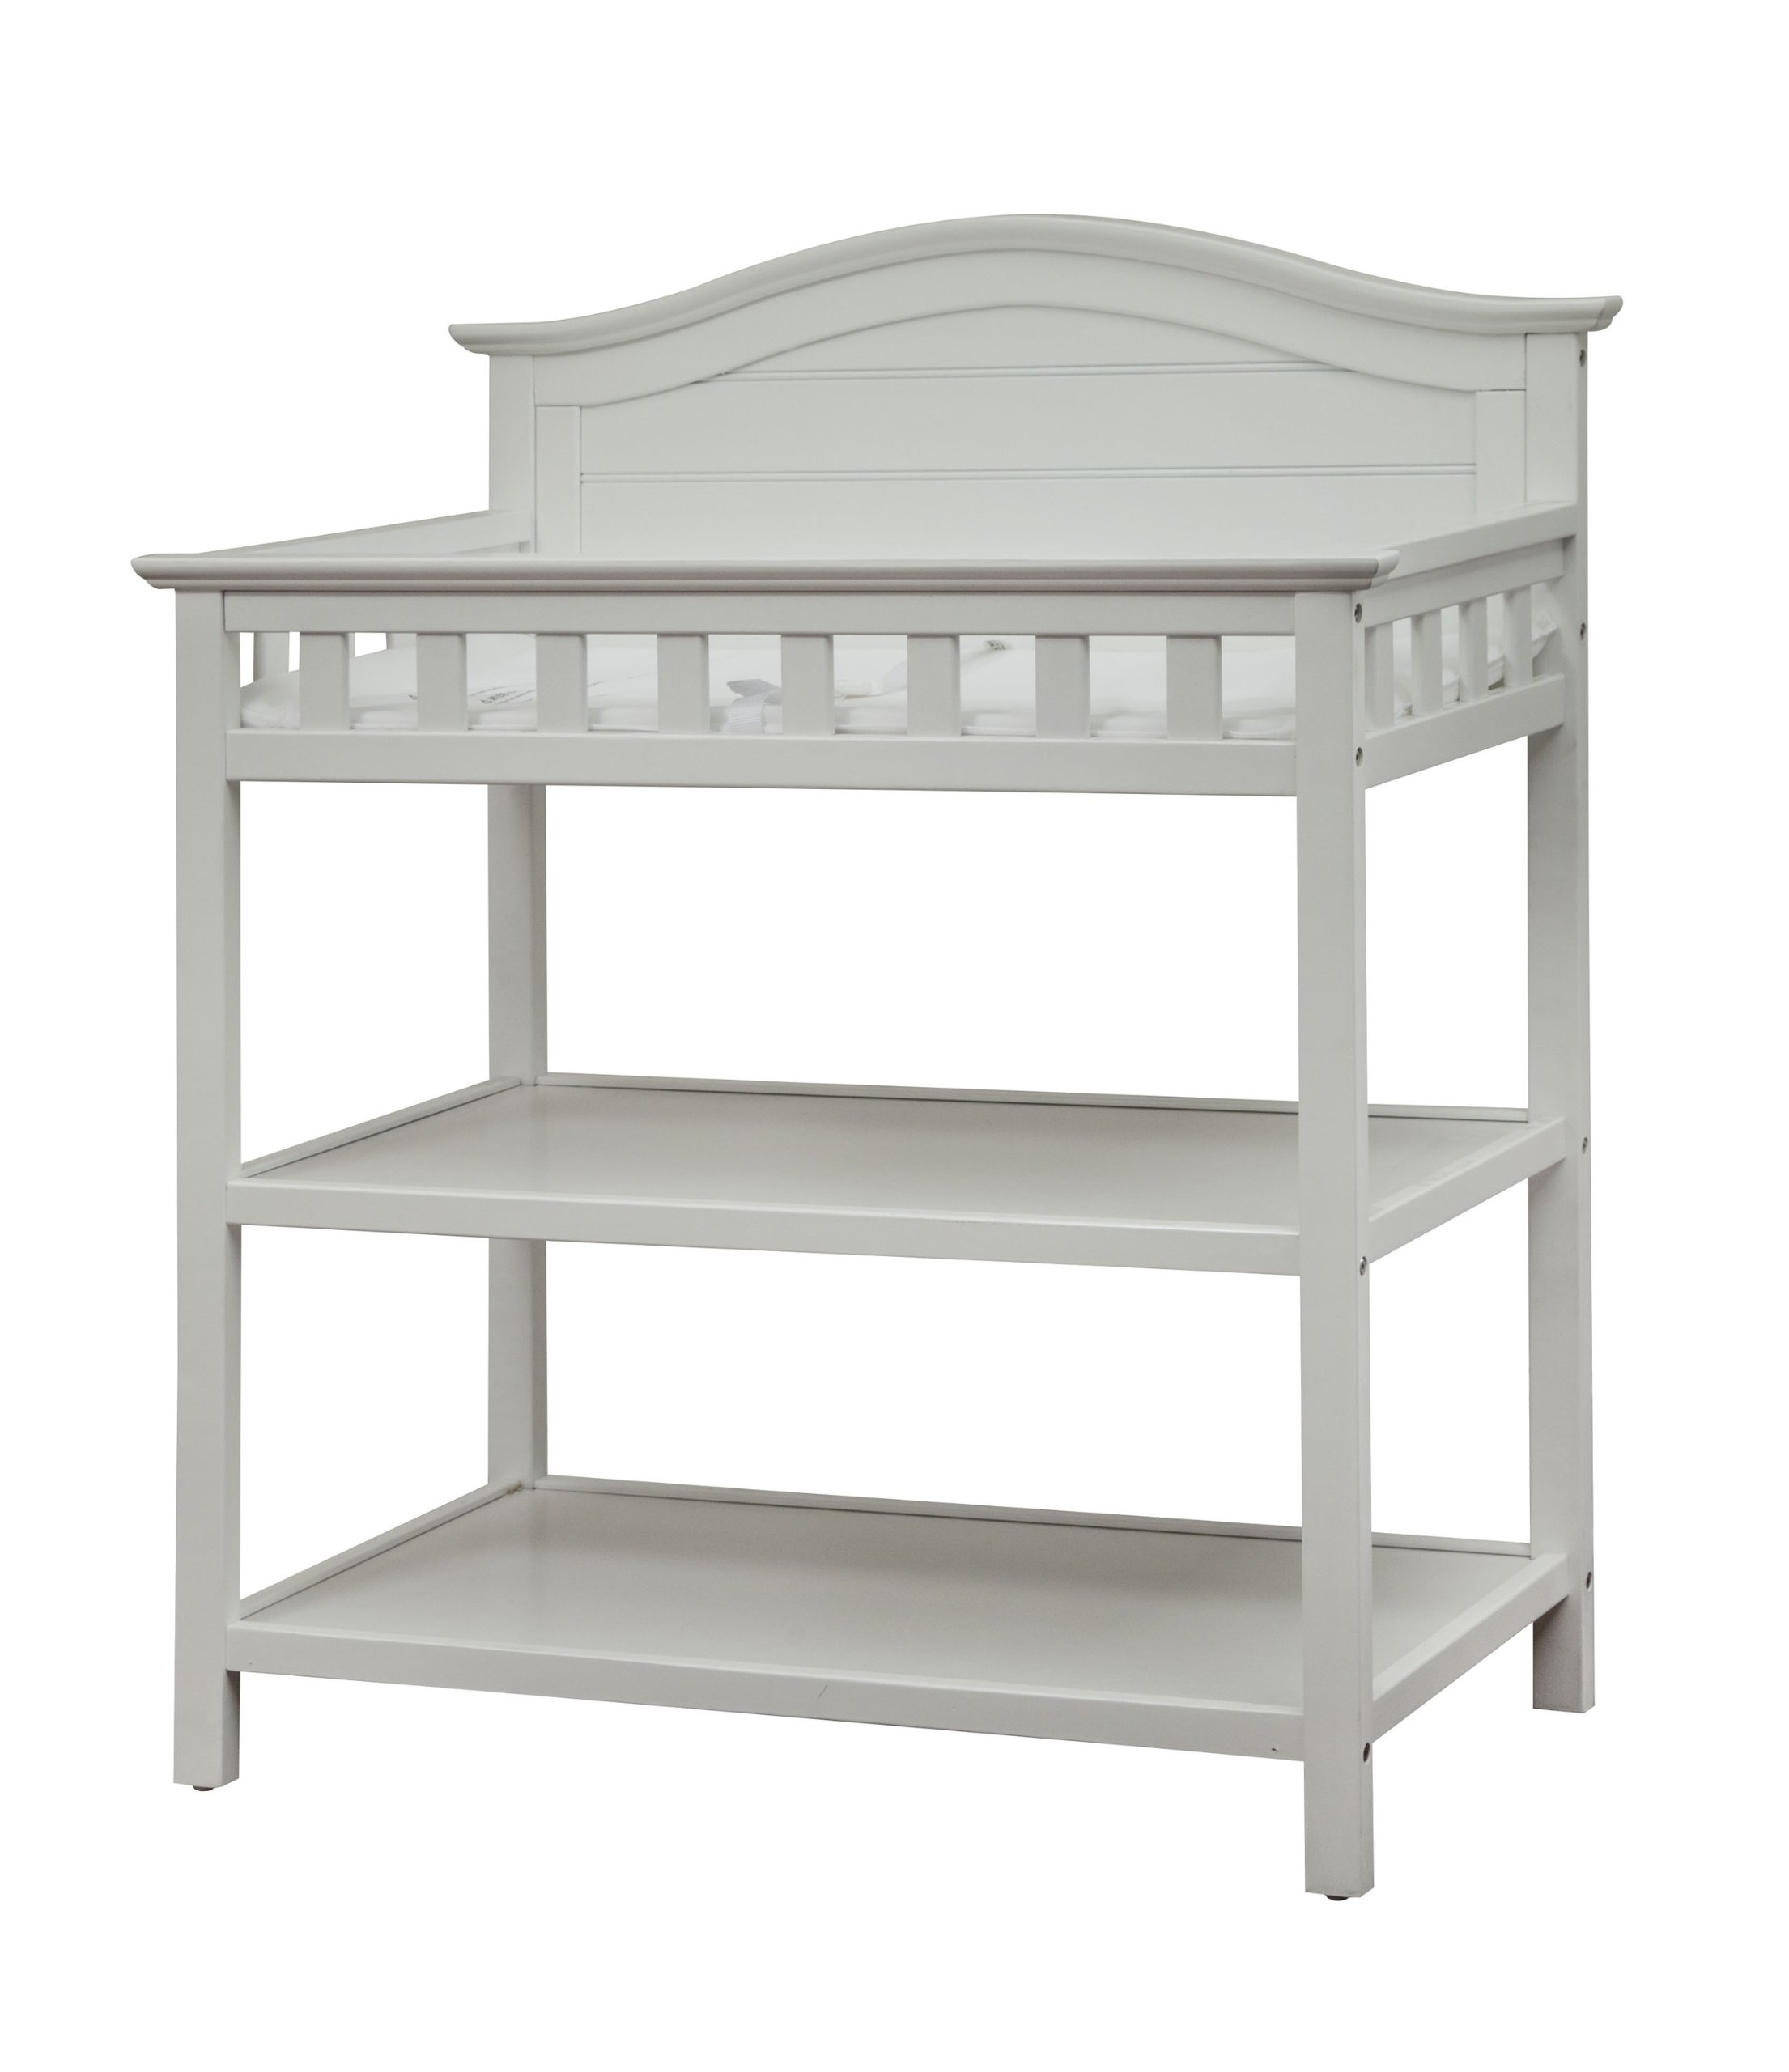 Thomasville Kids Southern Dunes Dressing Table with Pad, White